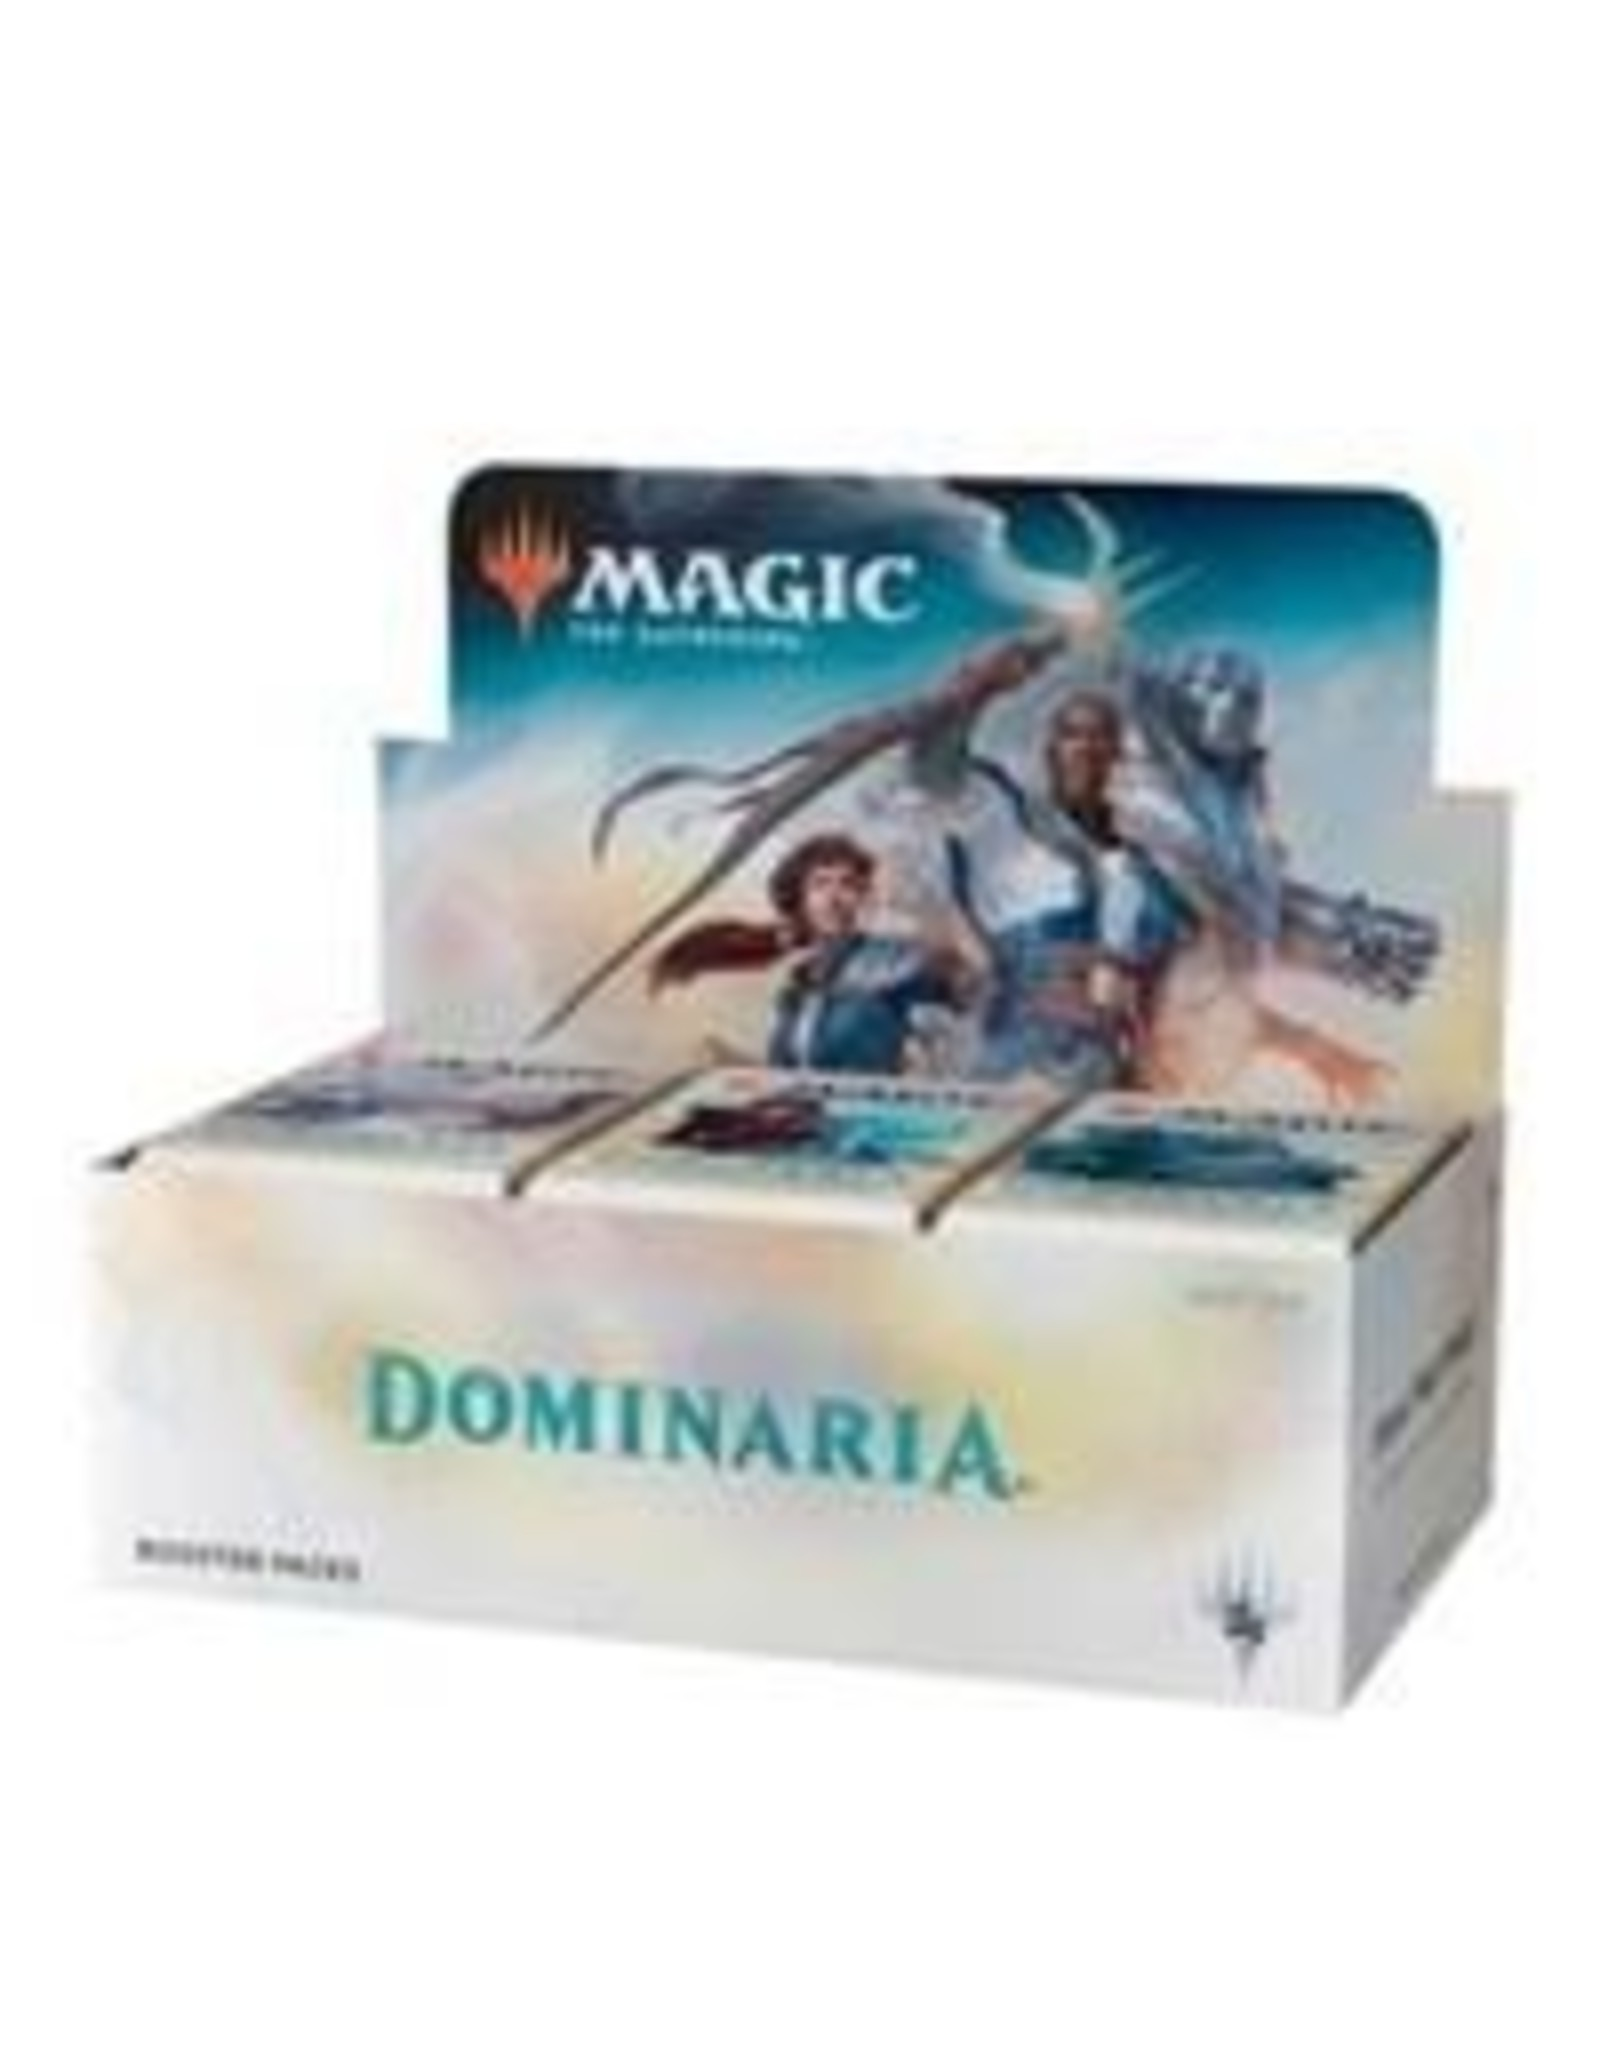 Magic MtG: Dominaria Booster Box